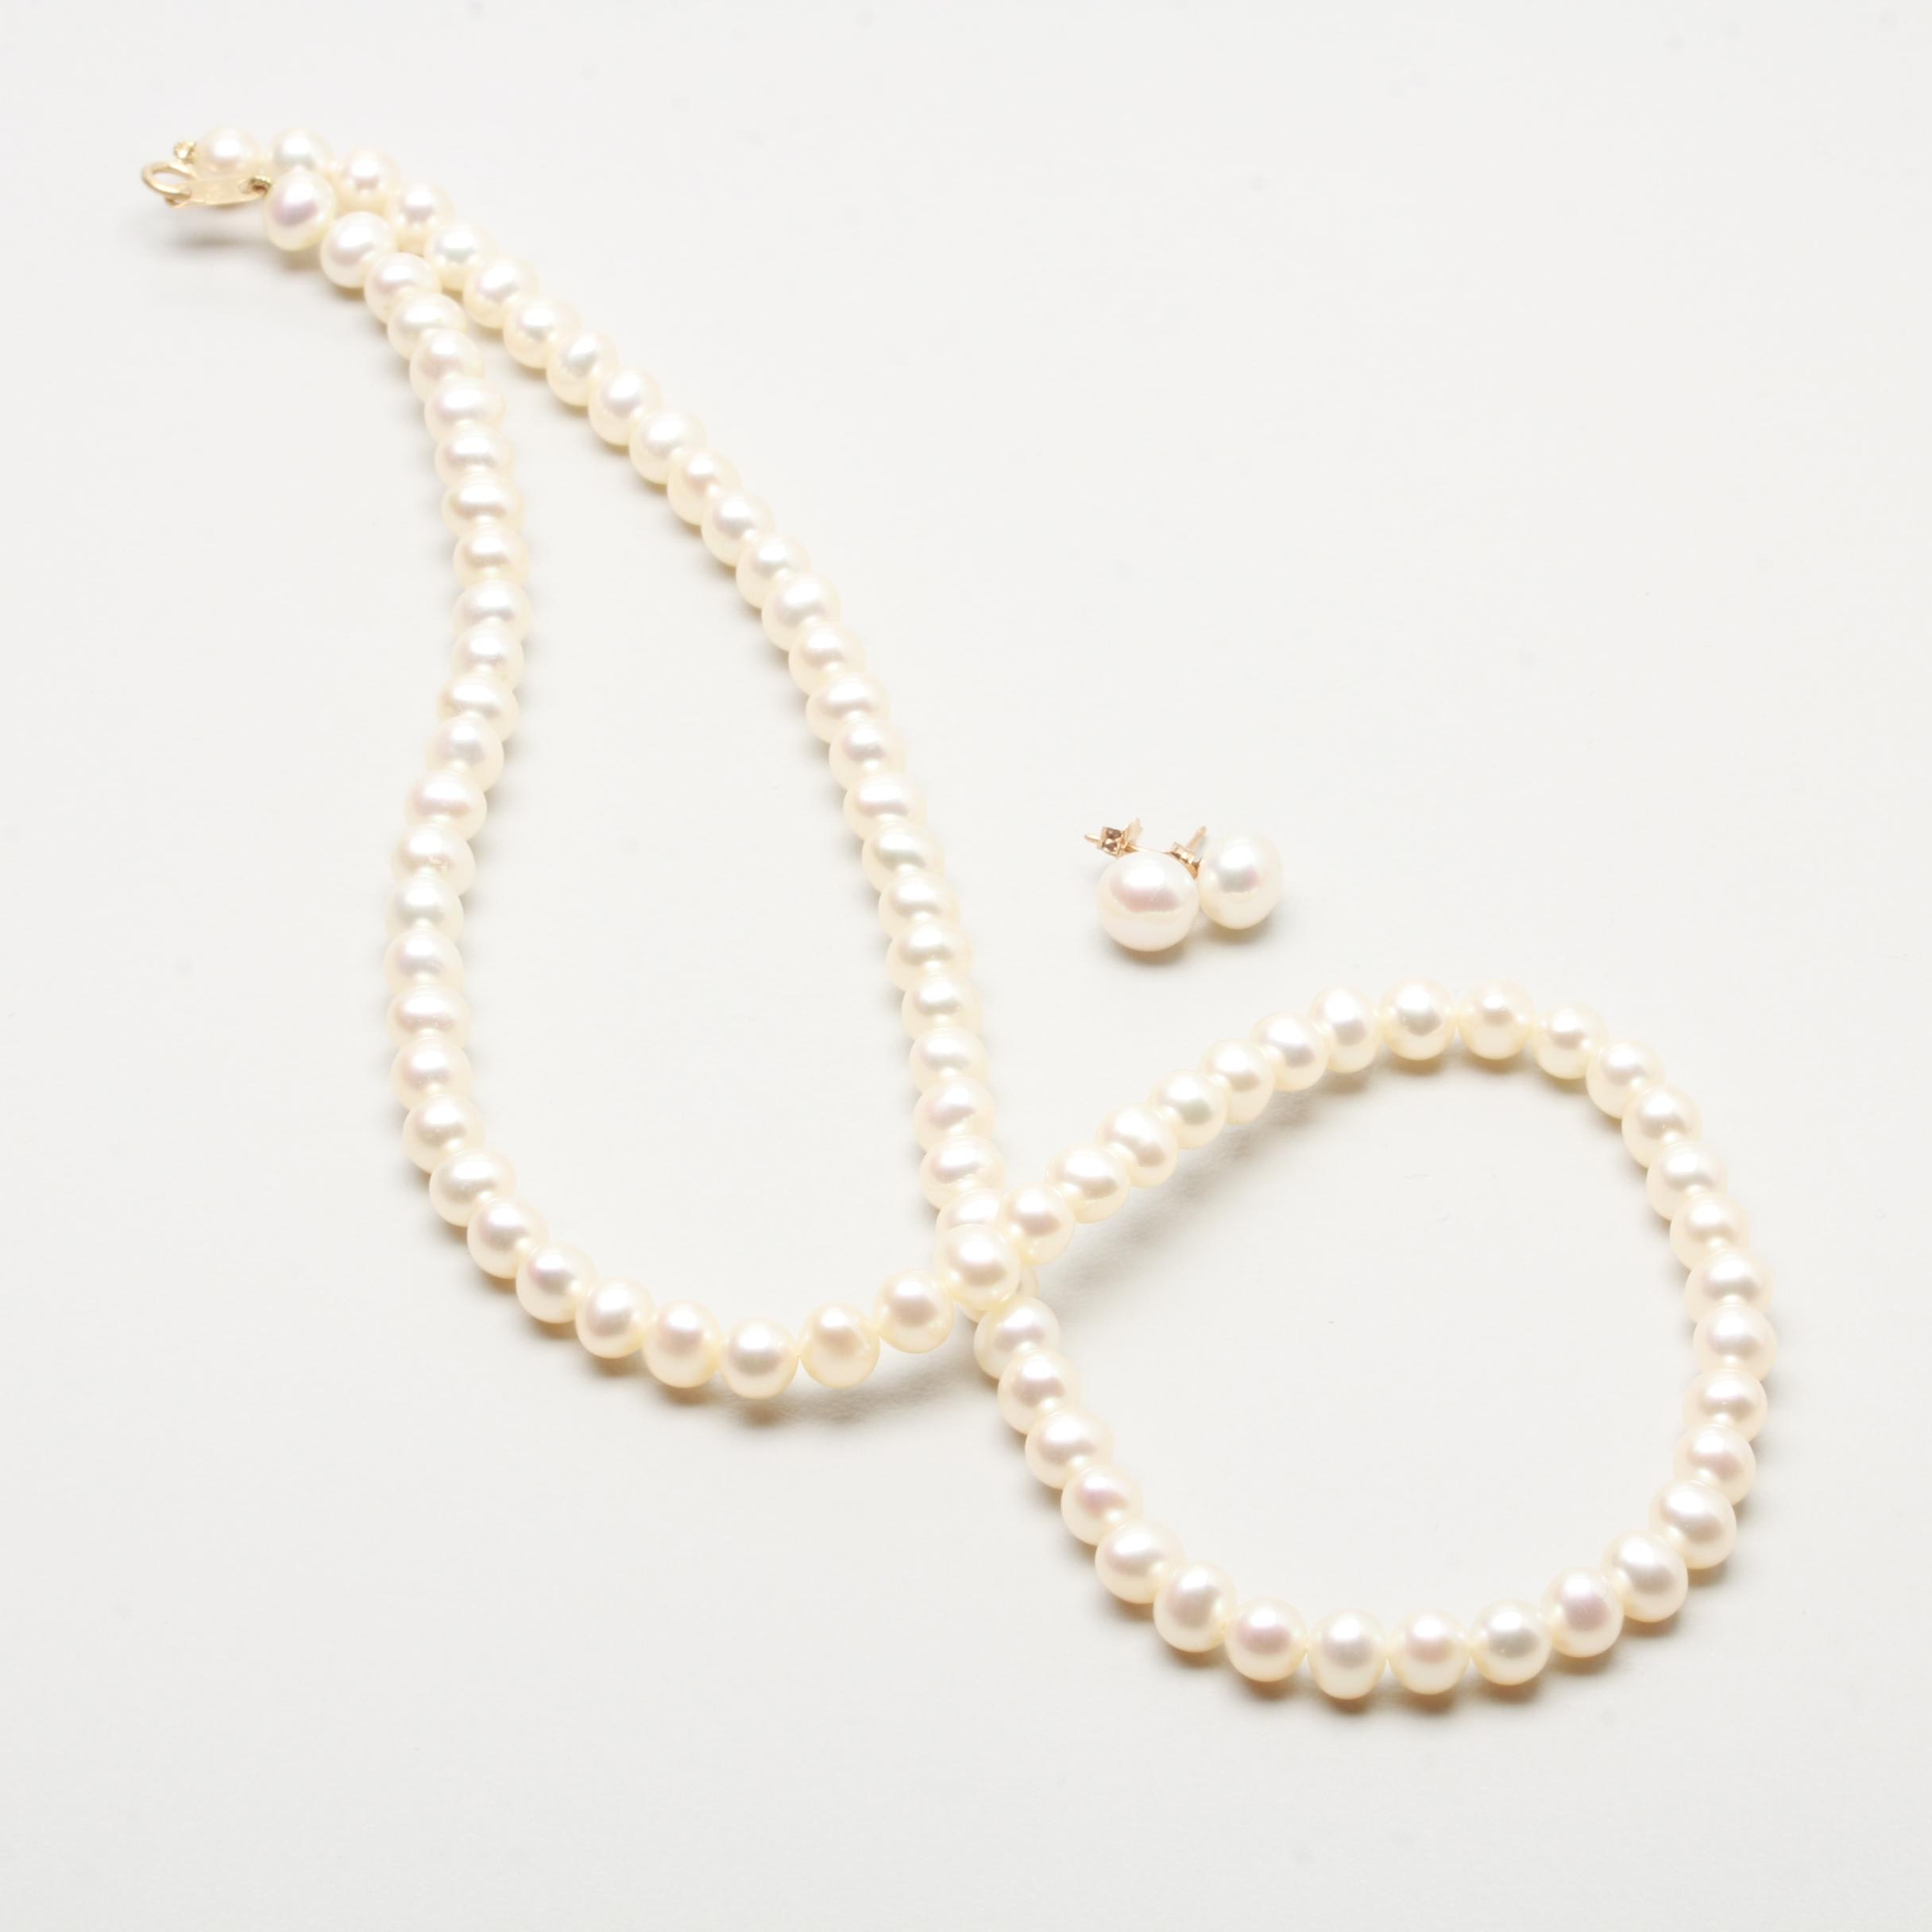 10K Yellow Gold Cultured Pearls Necklace and Earrings